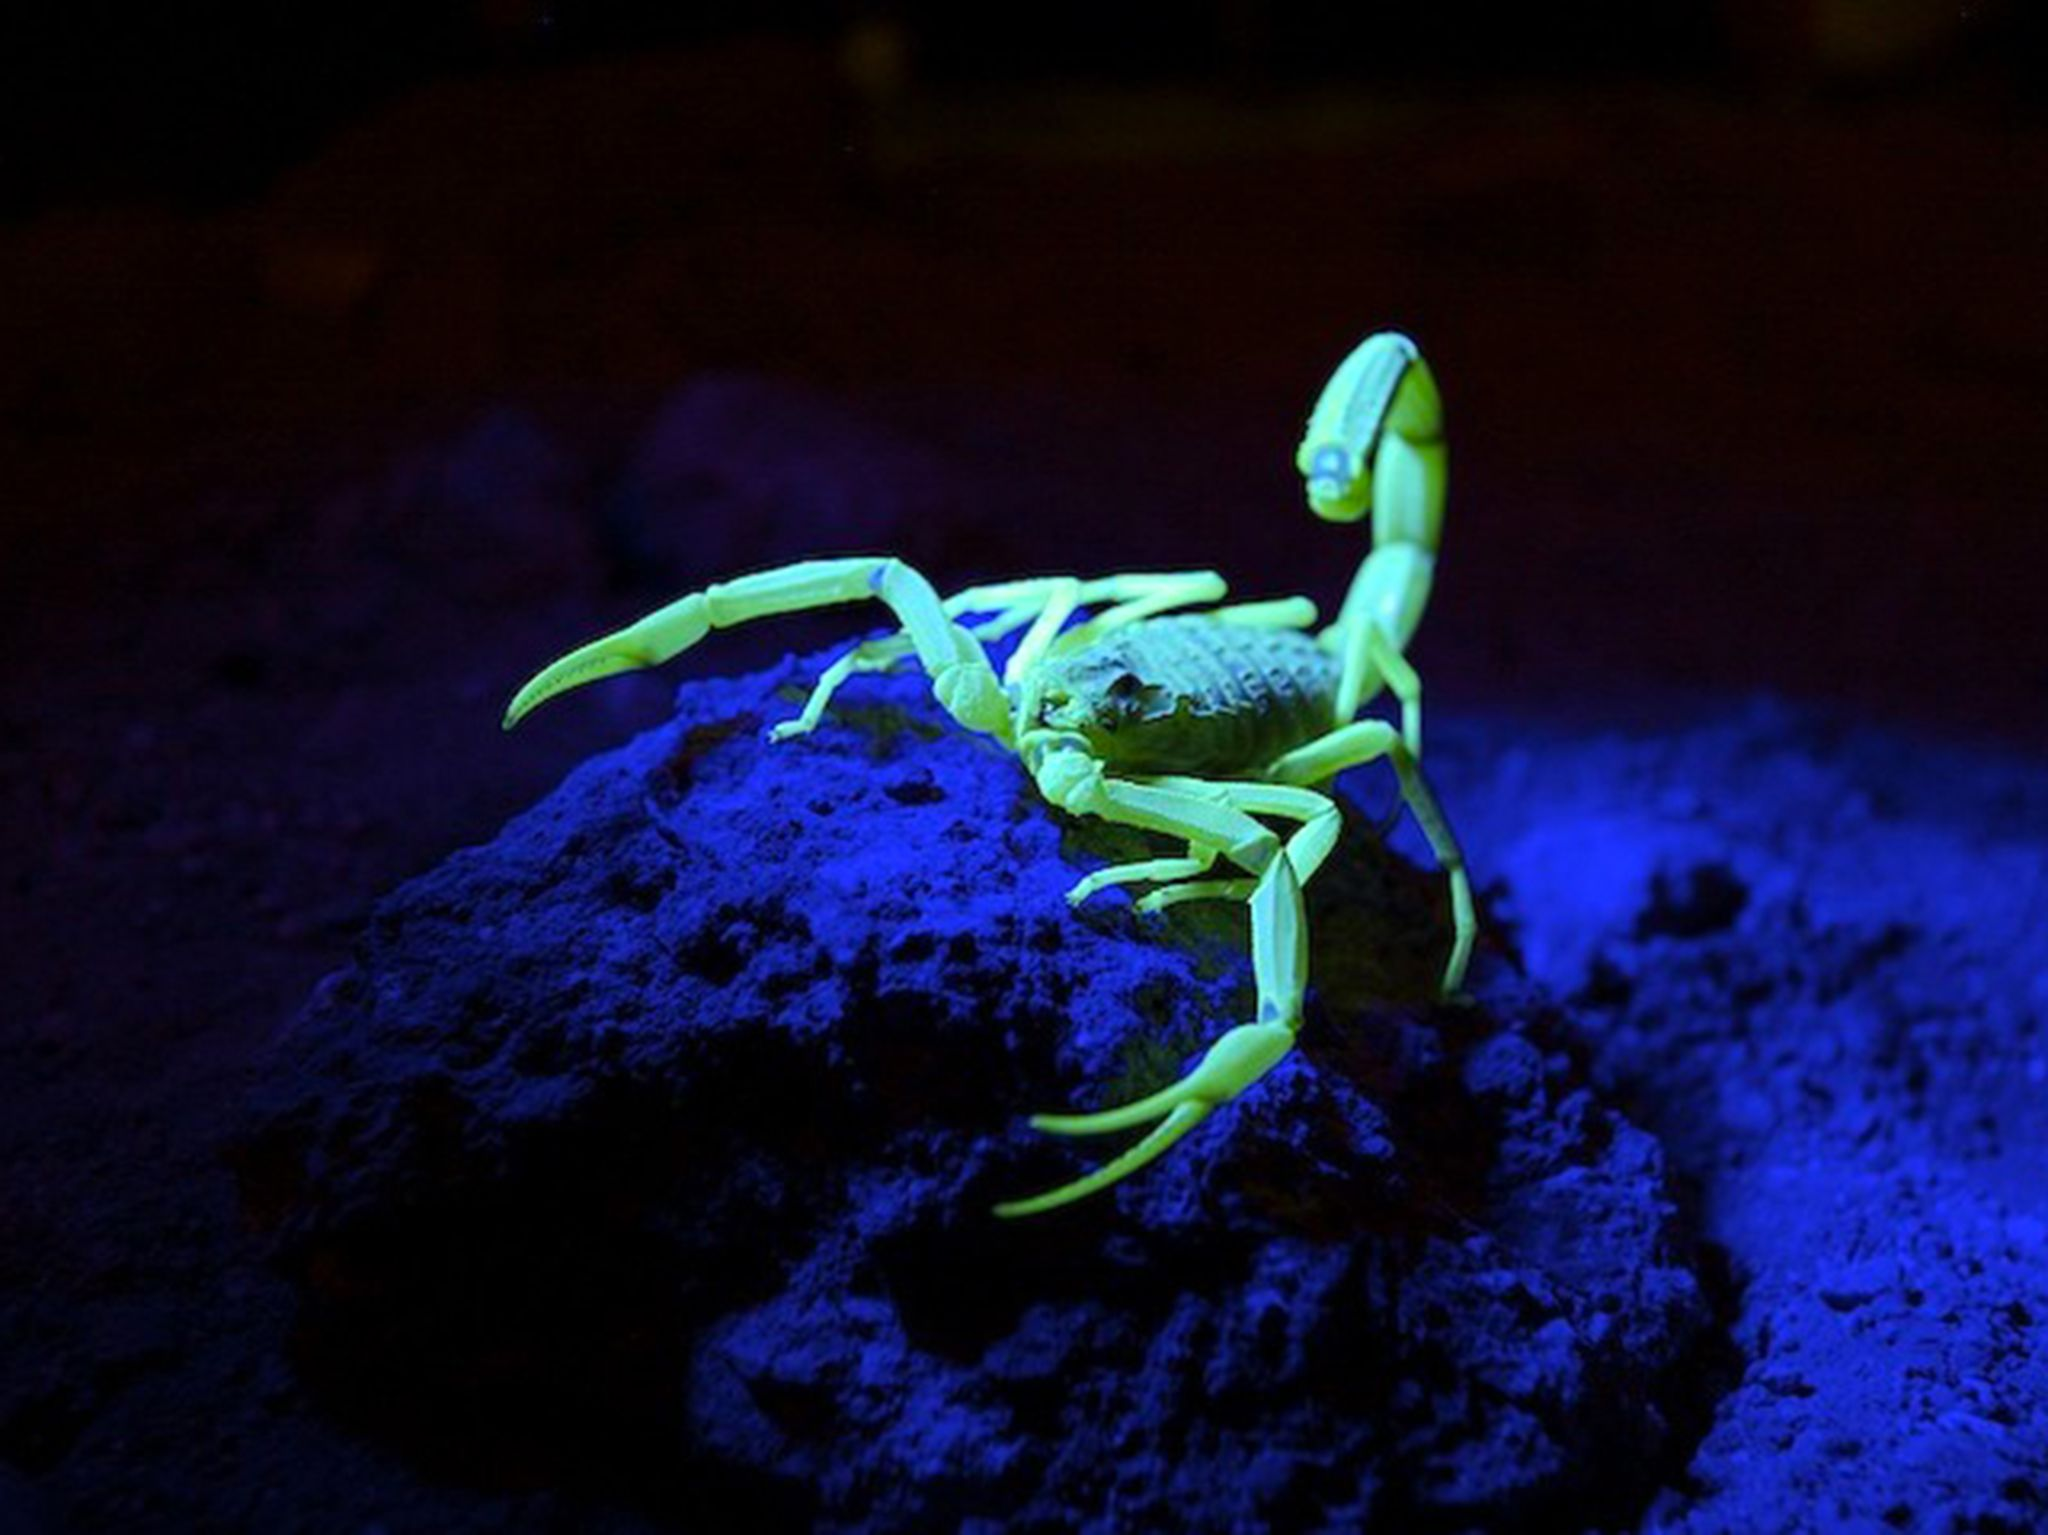 The death stalker scorpion glows underneath black light. This image is from Bite, Sting, Kill. [Photo of the day - 四月 2017]